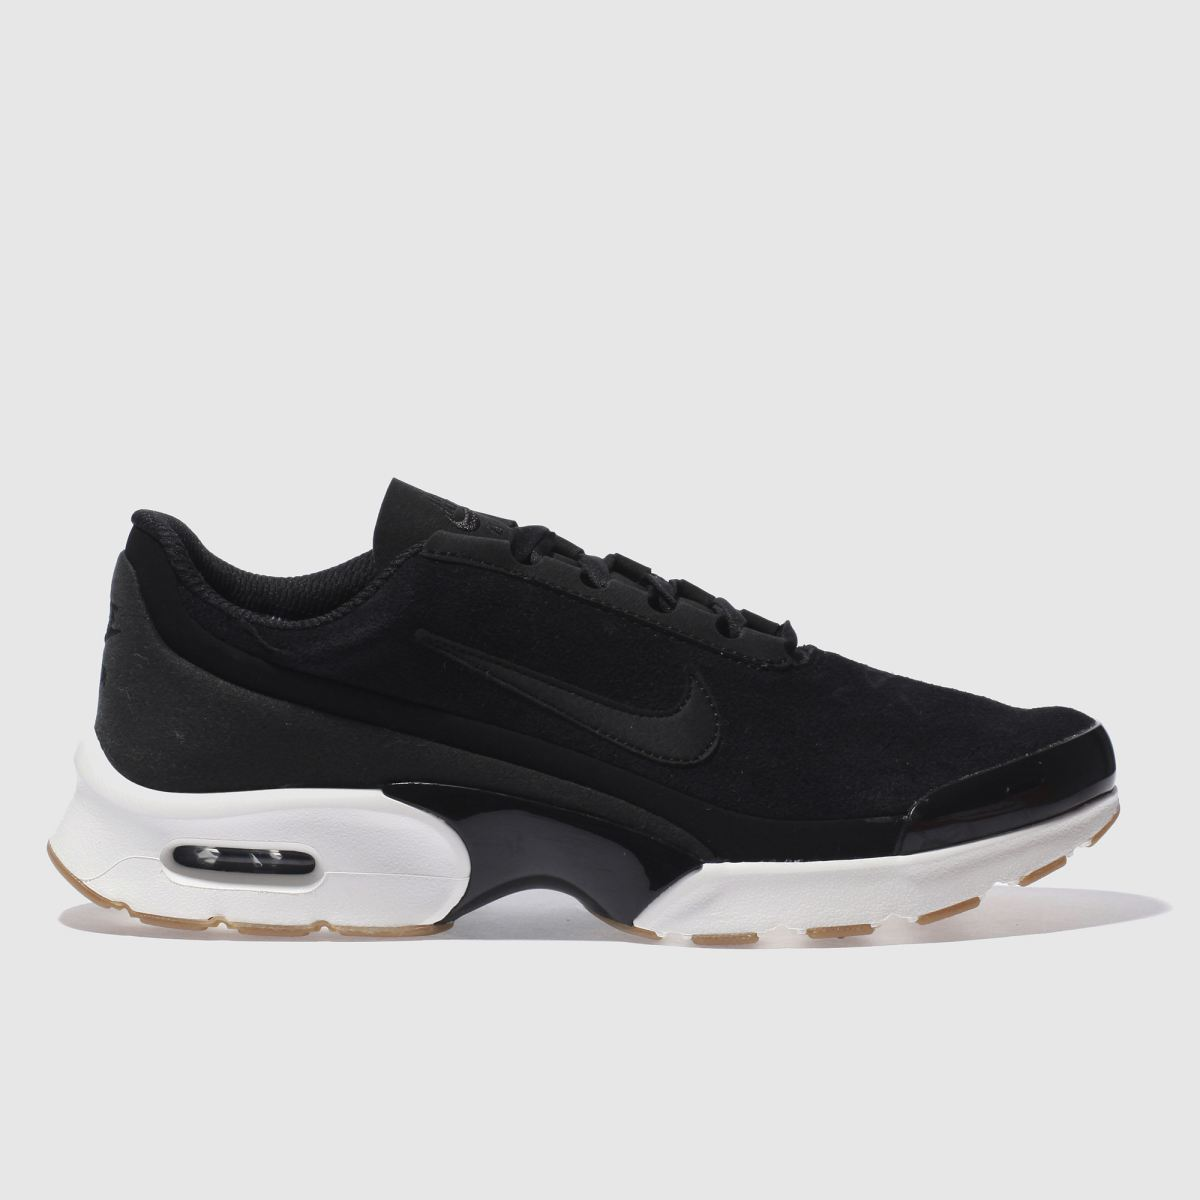 nike black & white air max jewel trainers